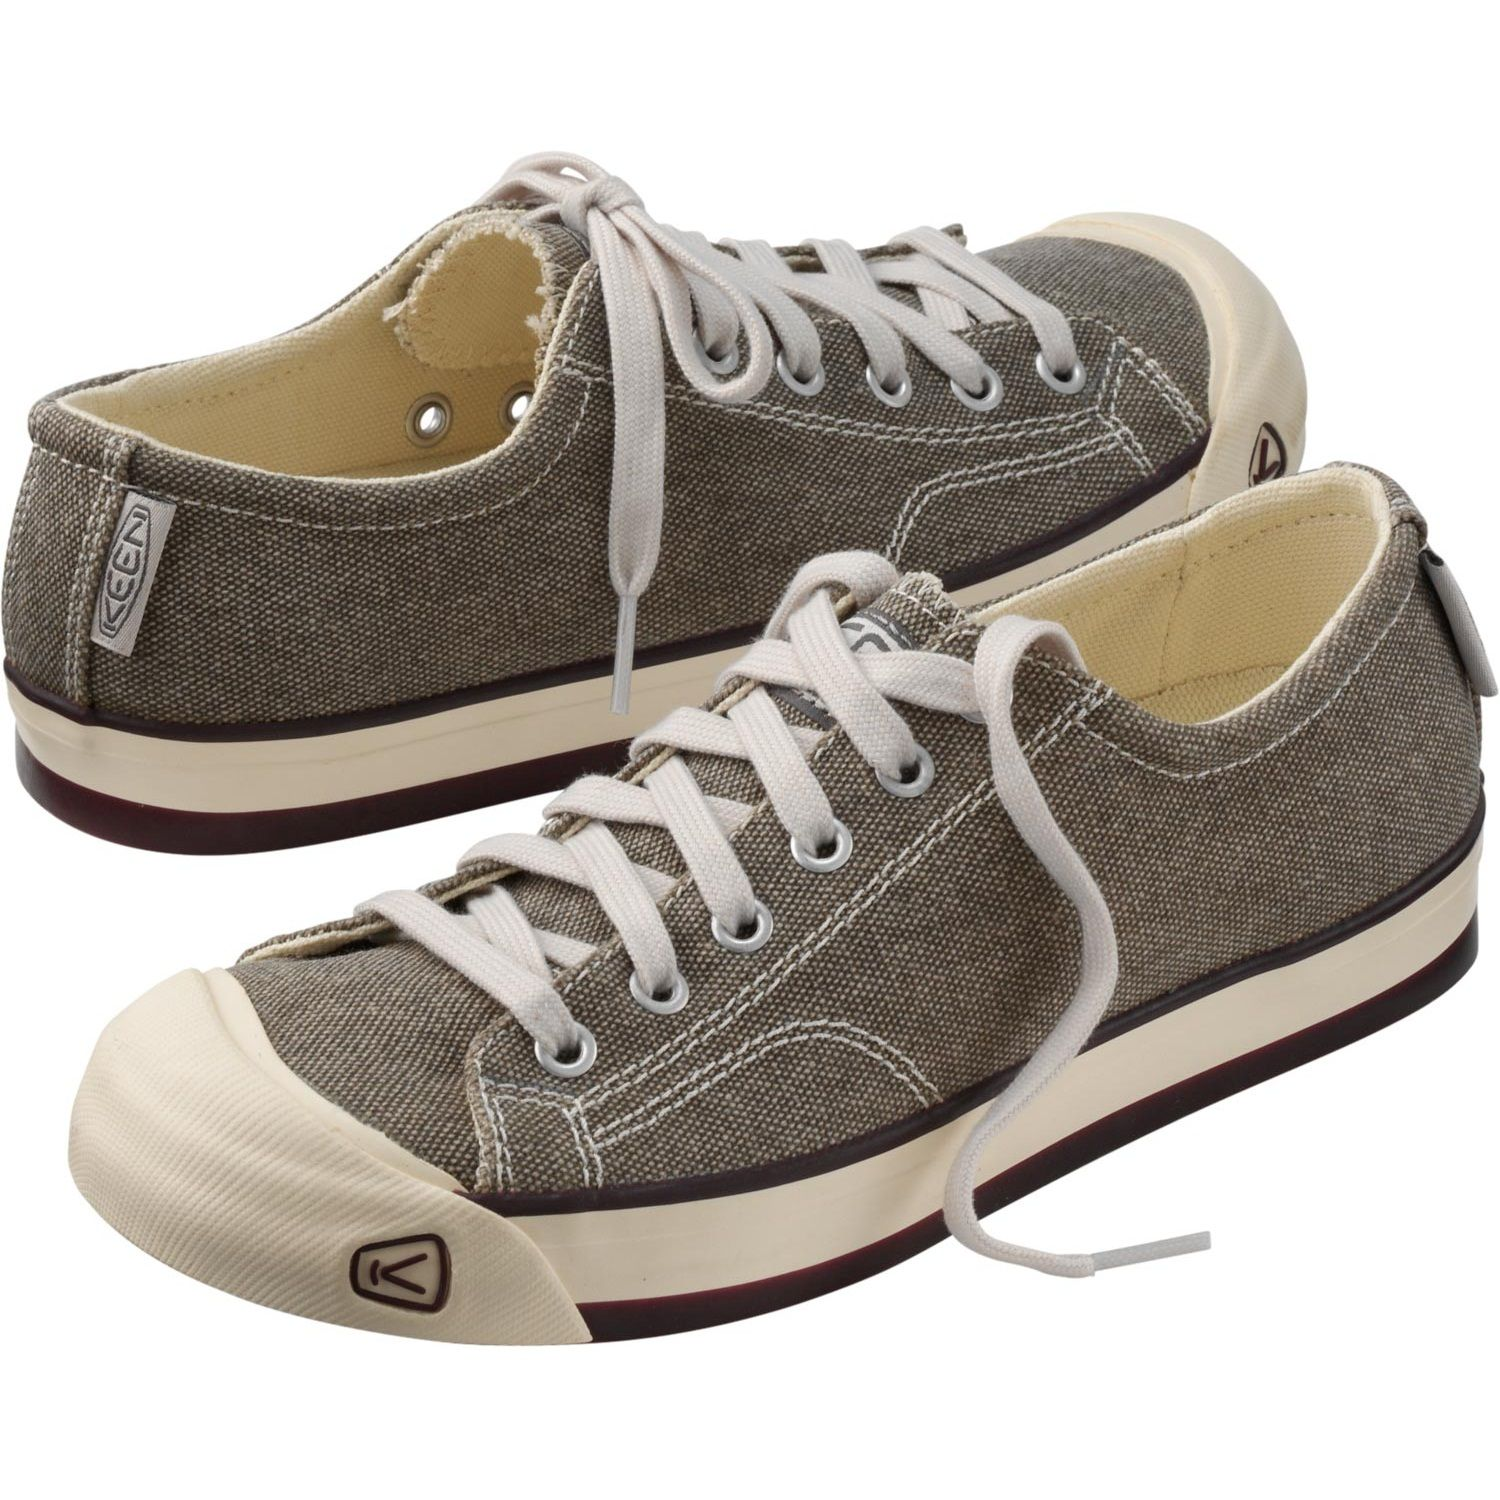 3f2e3681023 Women's Keen Coronado Shoes equip the classic sneaker to climb to new  heights of comfort, support and nimble-footedness. From Duluth Trading  Company.